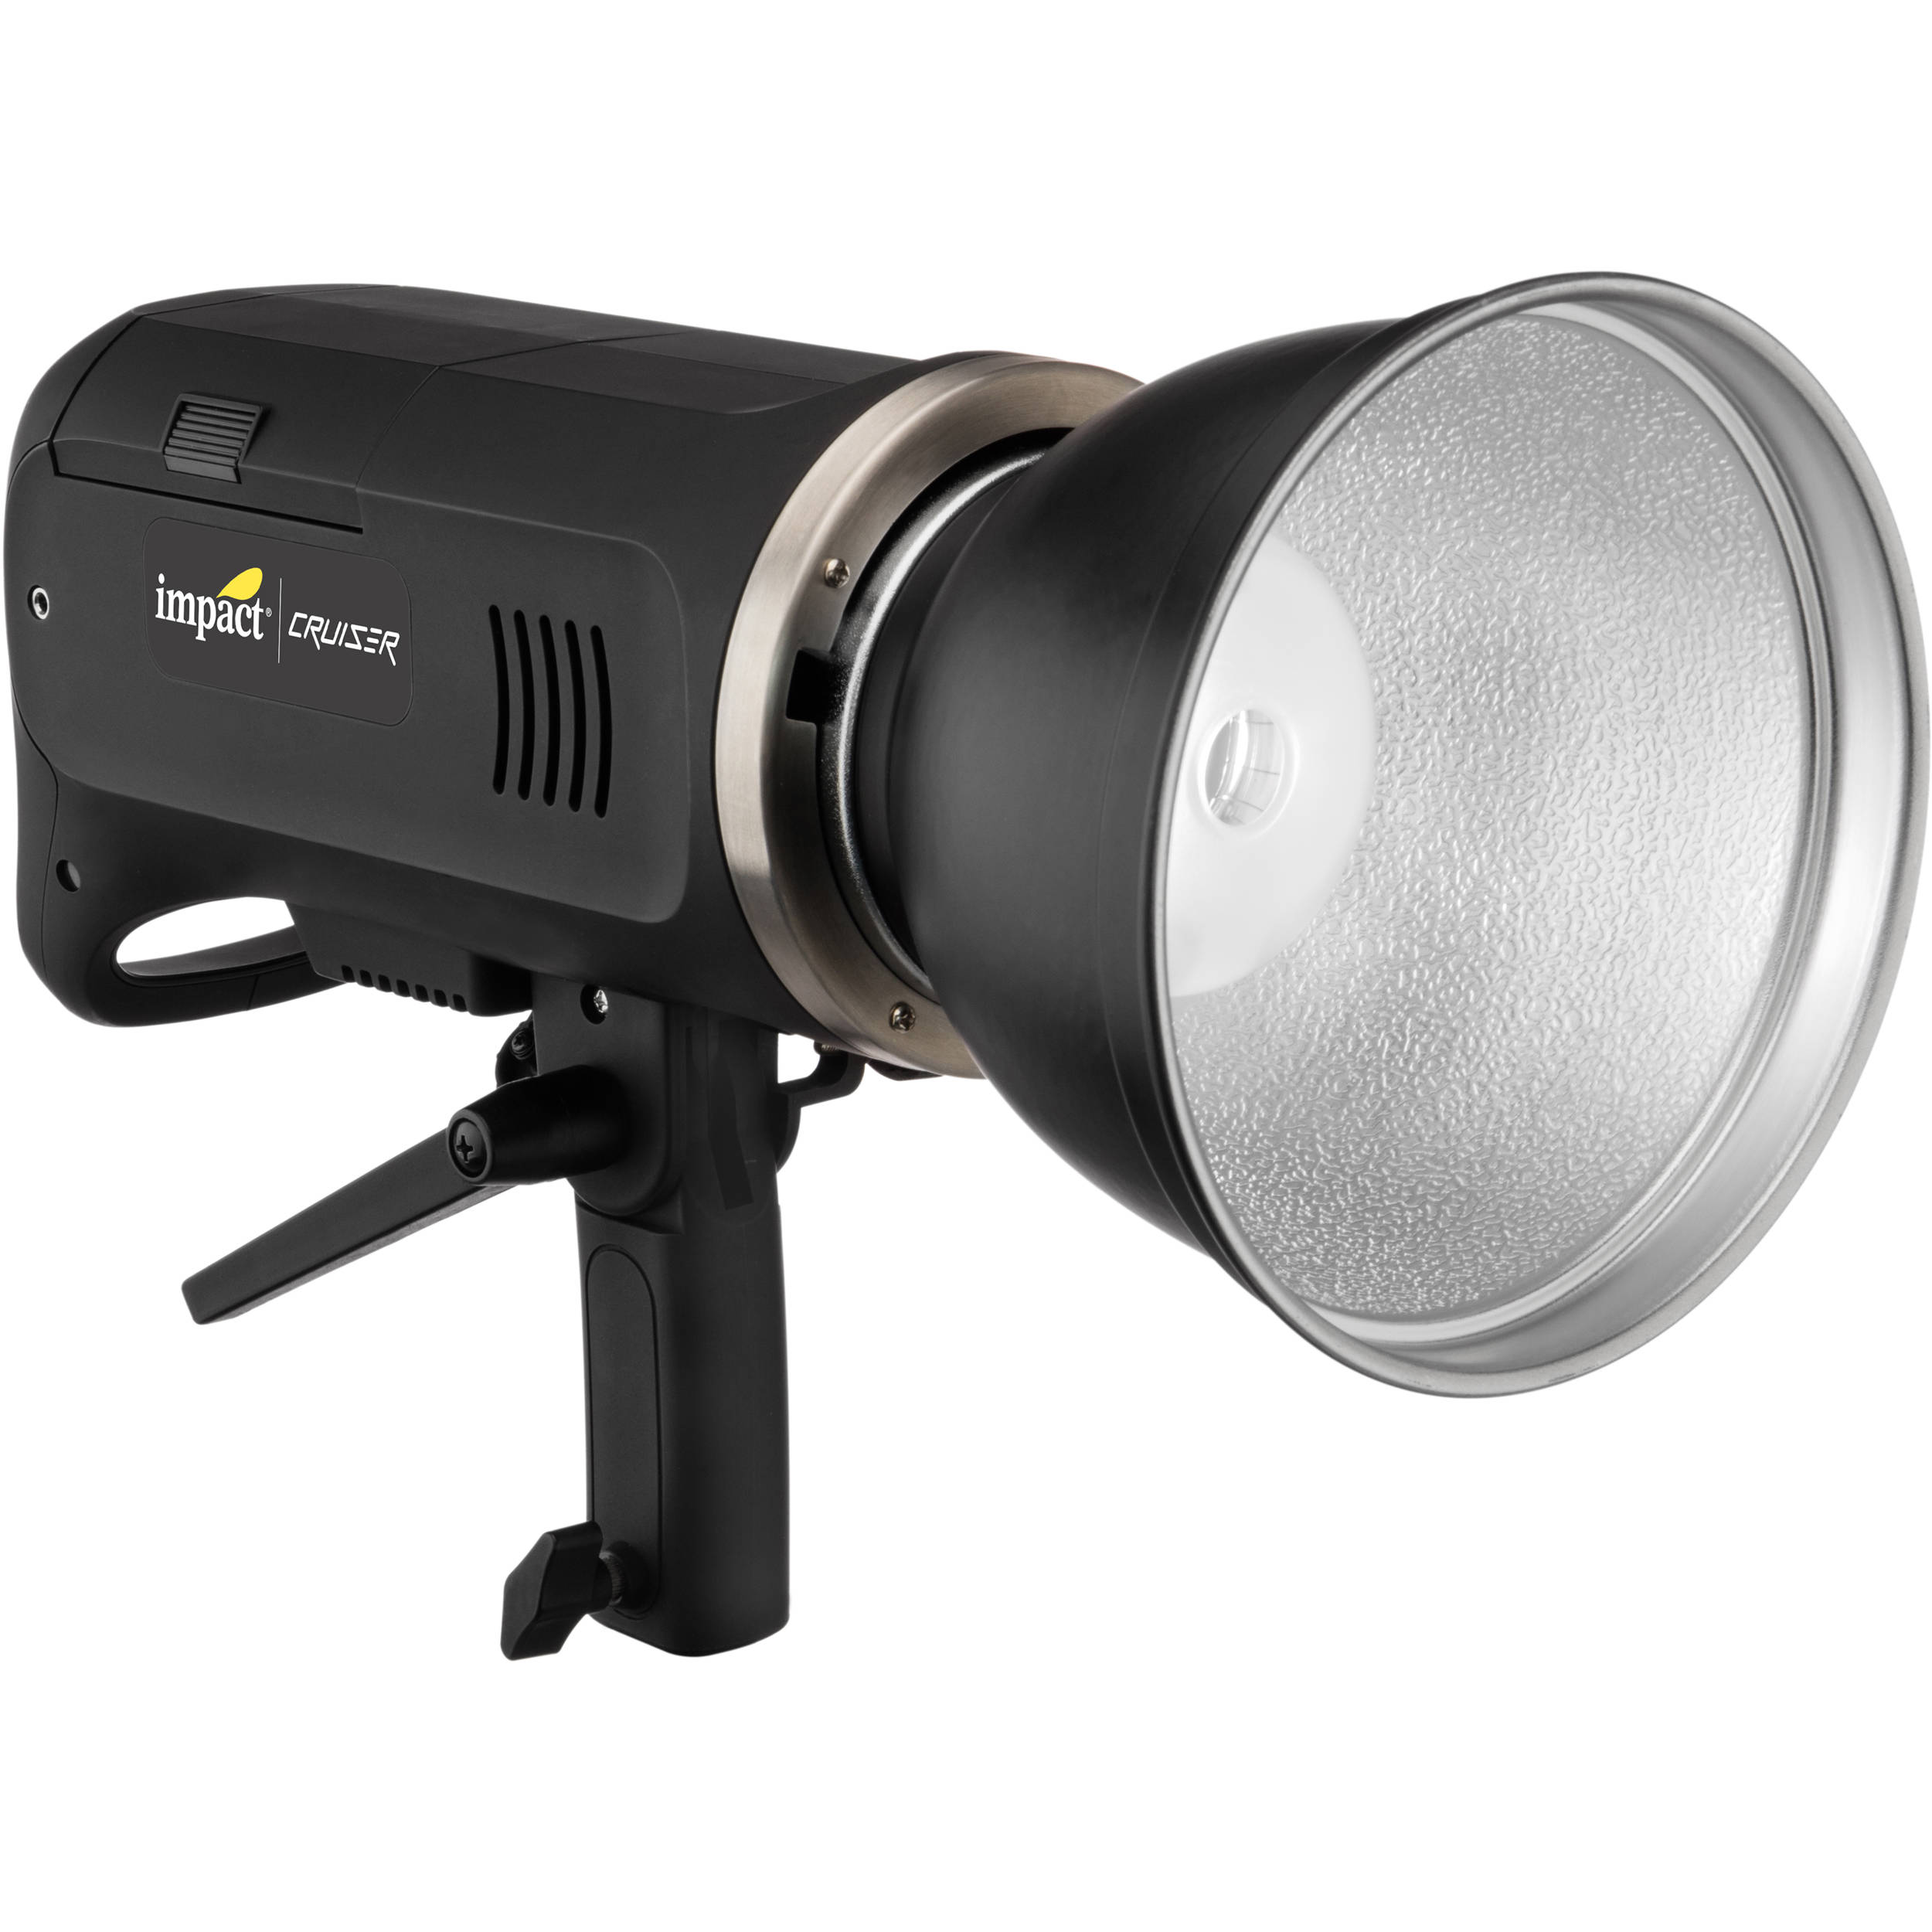 Impact Cruiser Ac Dc 500ws Battery Powered Ttl Acdc 500 Bh Electricalacdc 509480twolightsoneswitchwiringquestionhtml Monolight